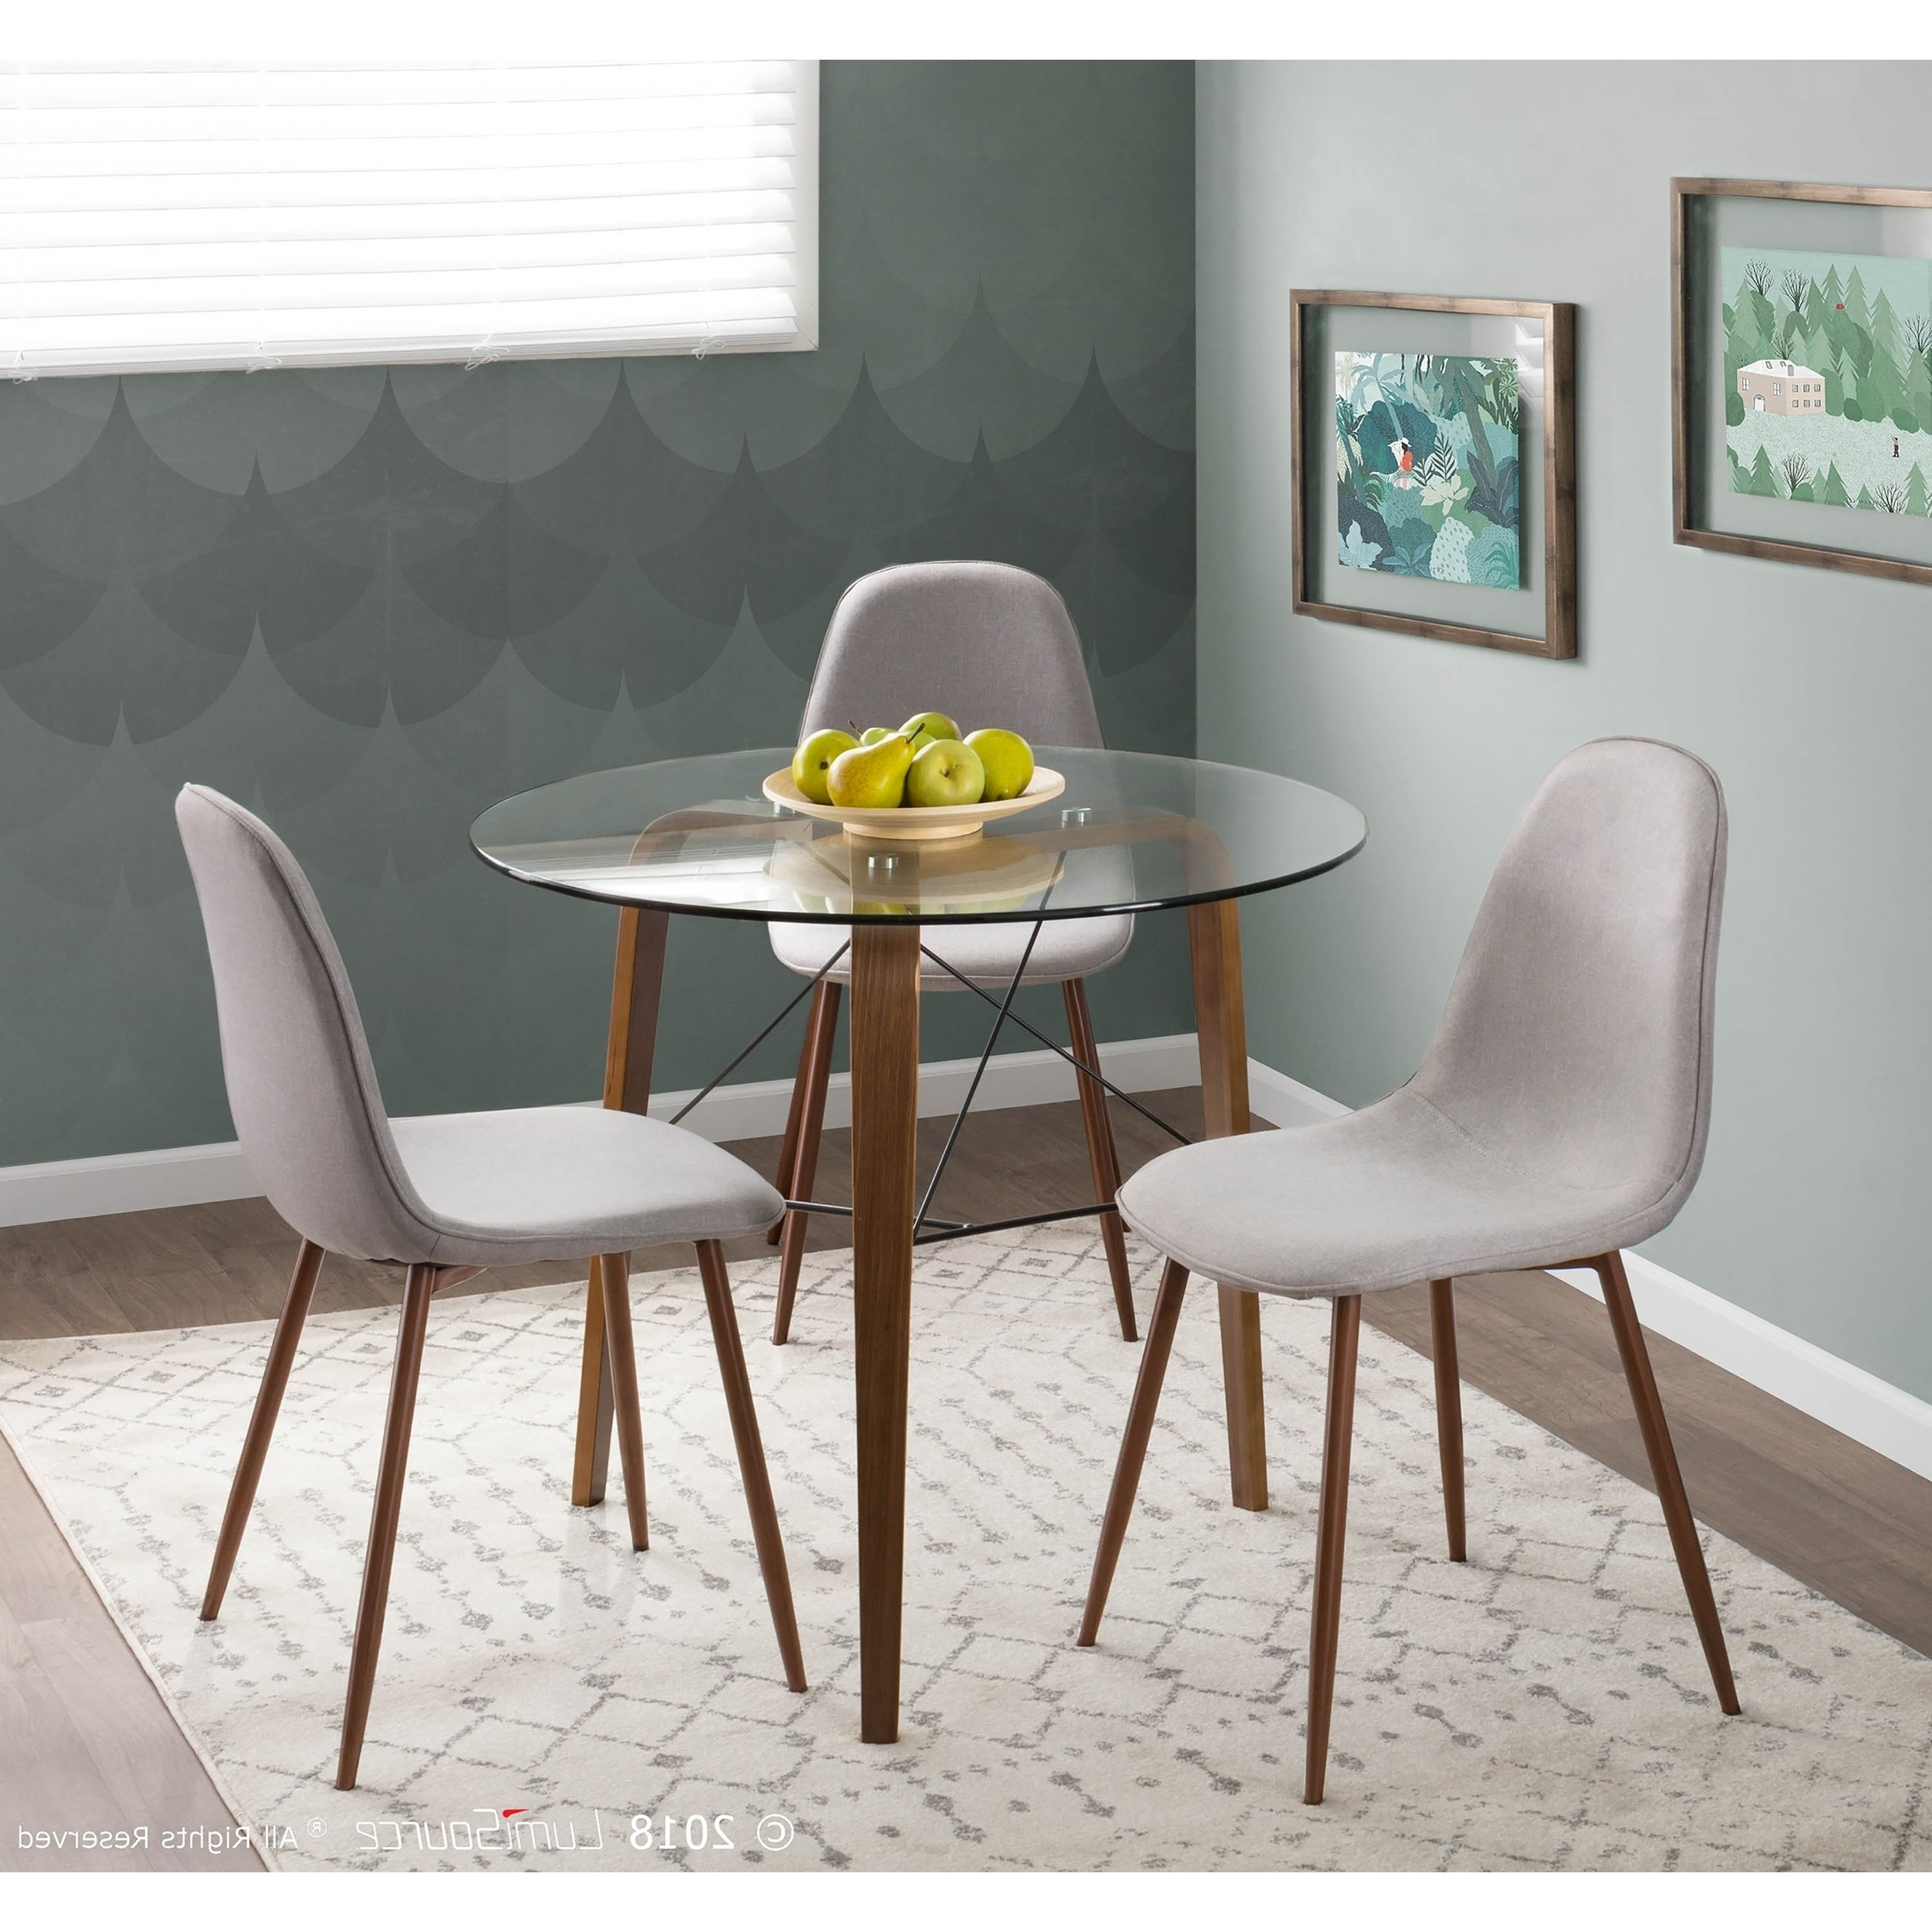 Shop Pebble Mid Century Modern Upholstered Accent / Dining Chair Within Preferred Caden 6 Piece Dining Sets With Upholstered Side Chair (View 13 of 25)